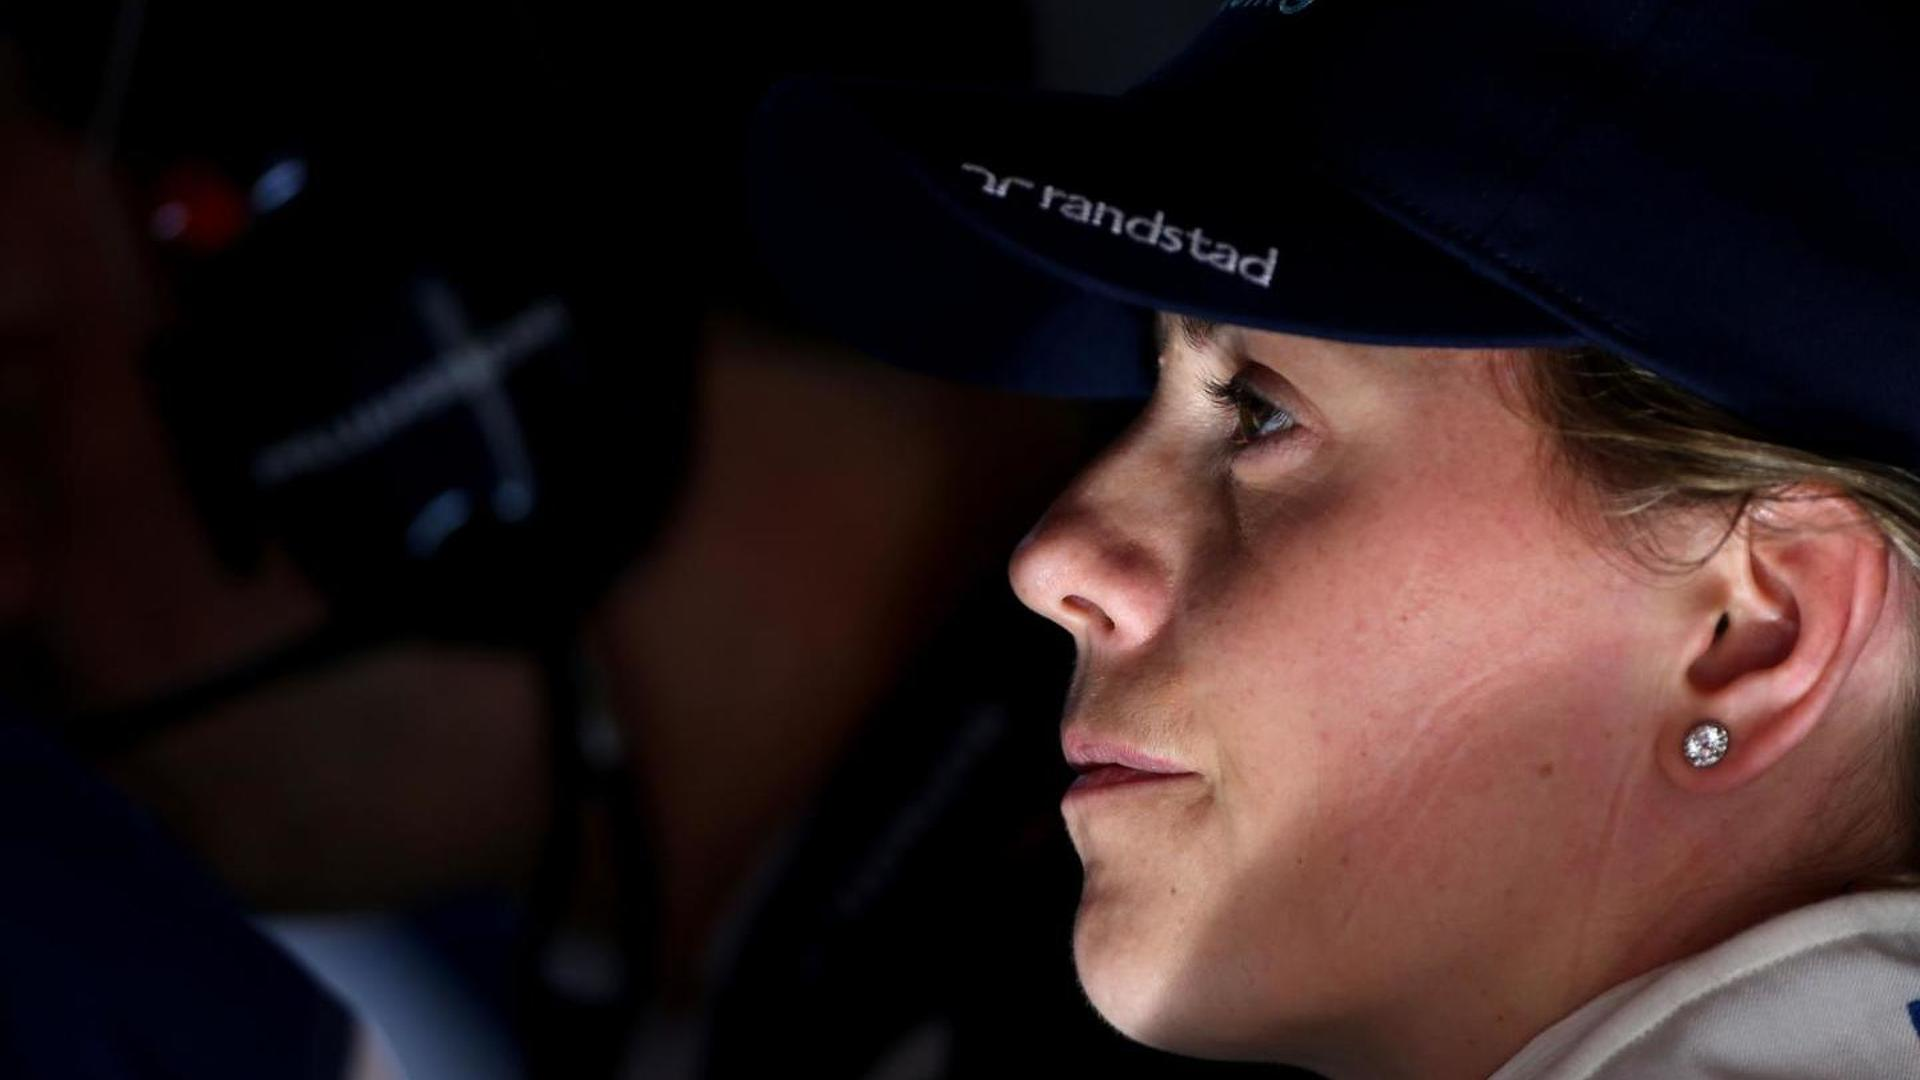 Susie Wolff to rethink F1 role after Silverstone